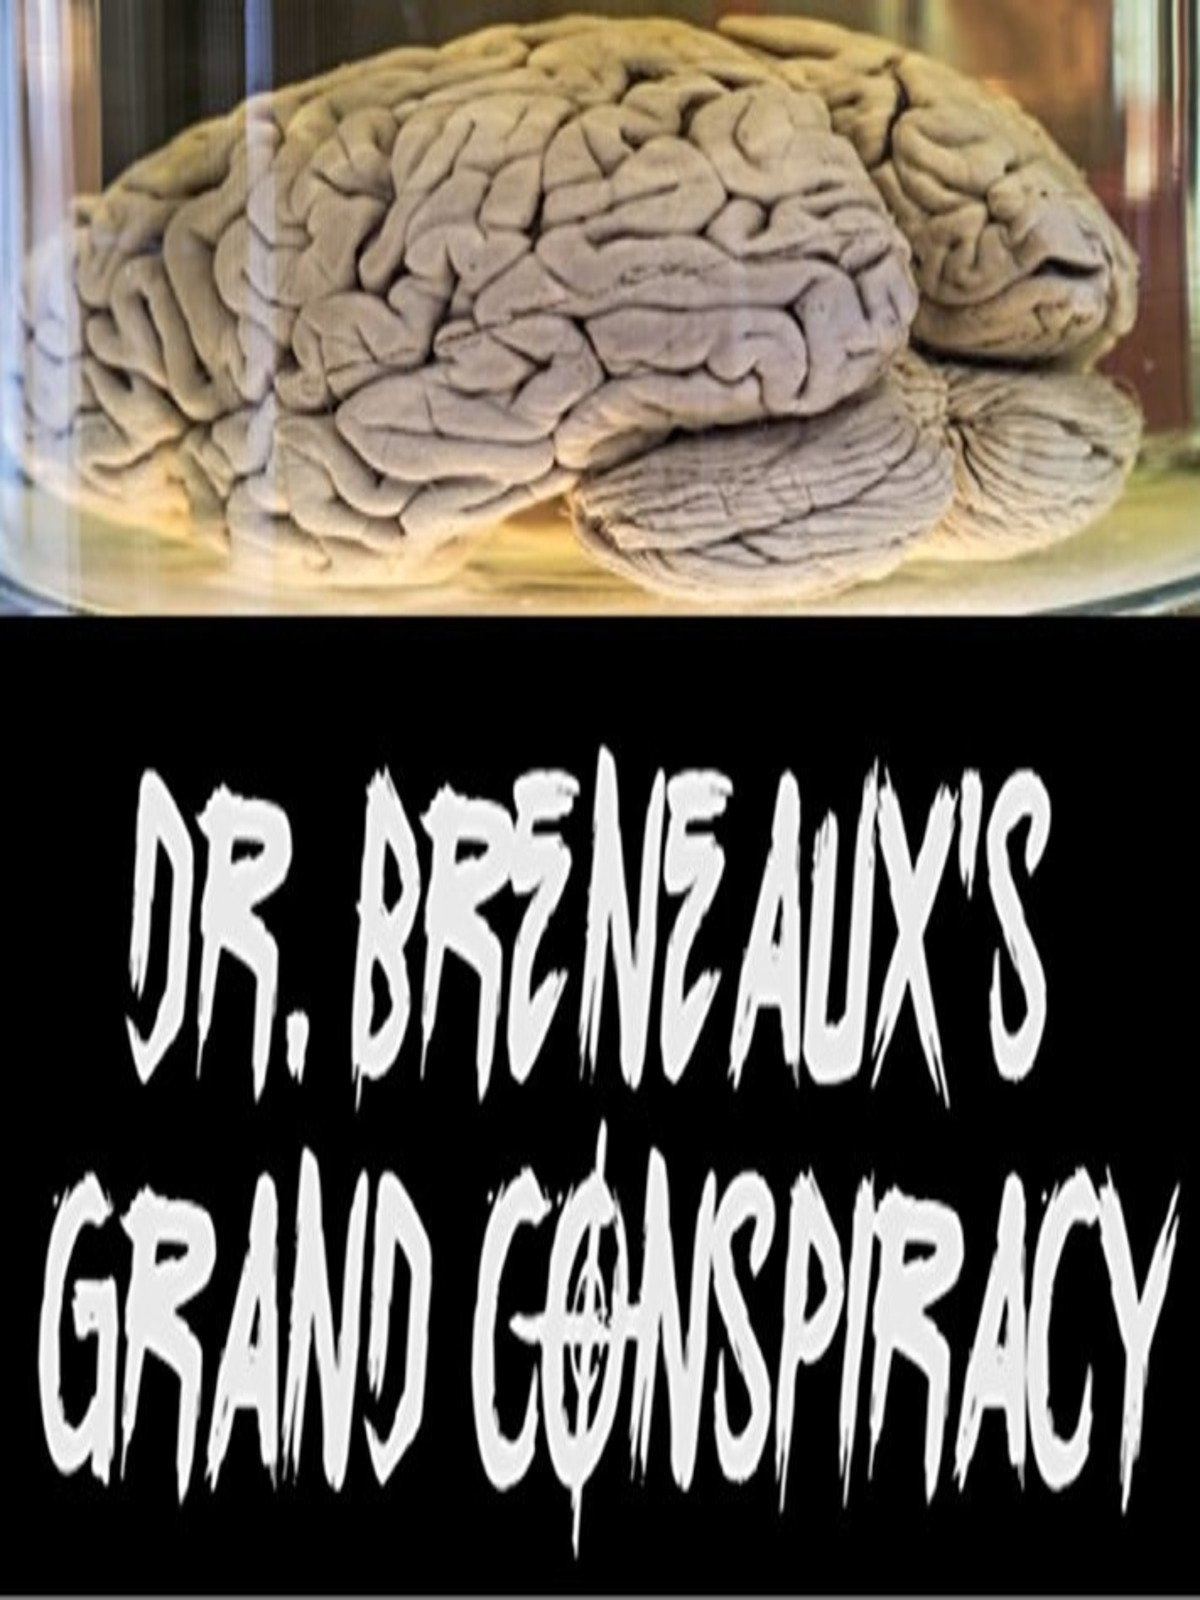 Dr. Brenaux's Grand Conspiracy